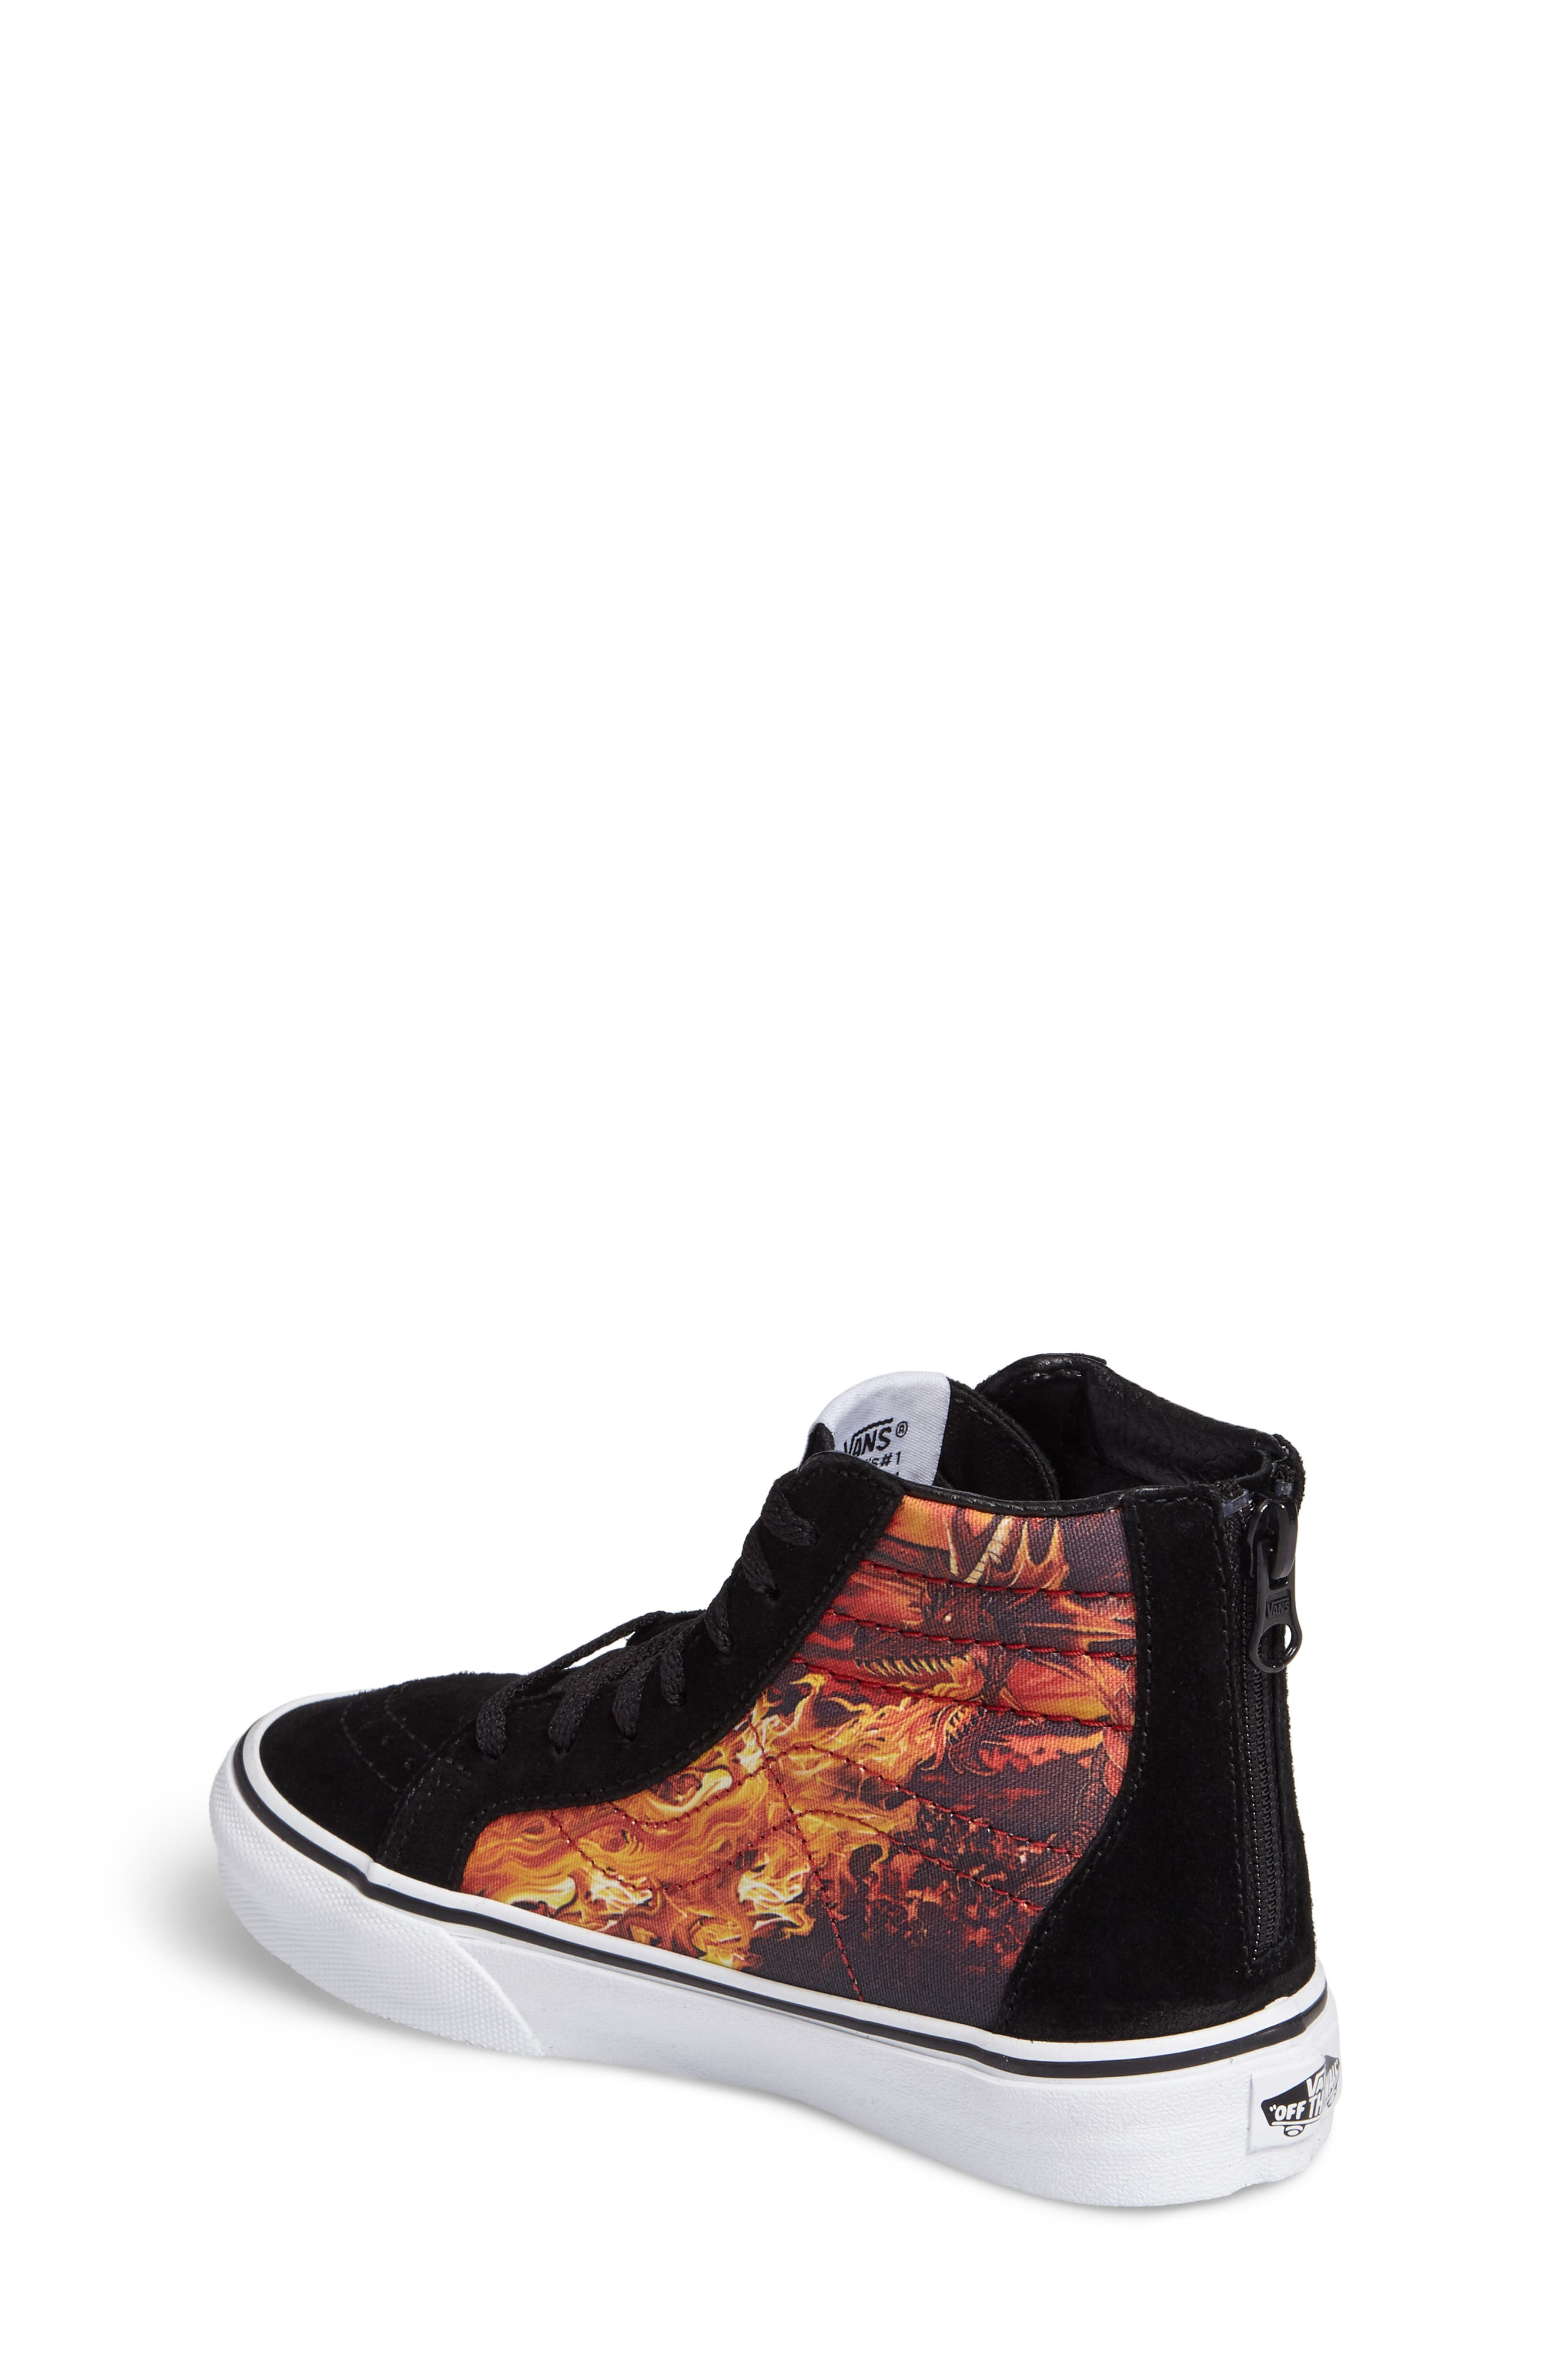 SK8-Hi Dragon Zip Sneaker,                             Alternate thumbnail 2, color,